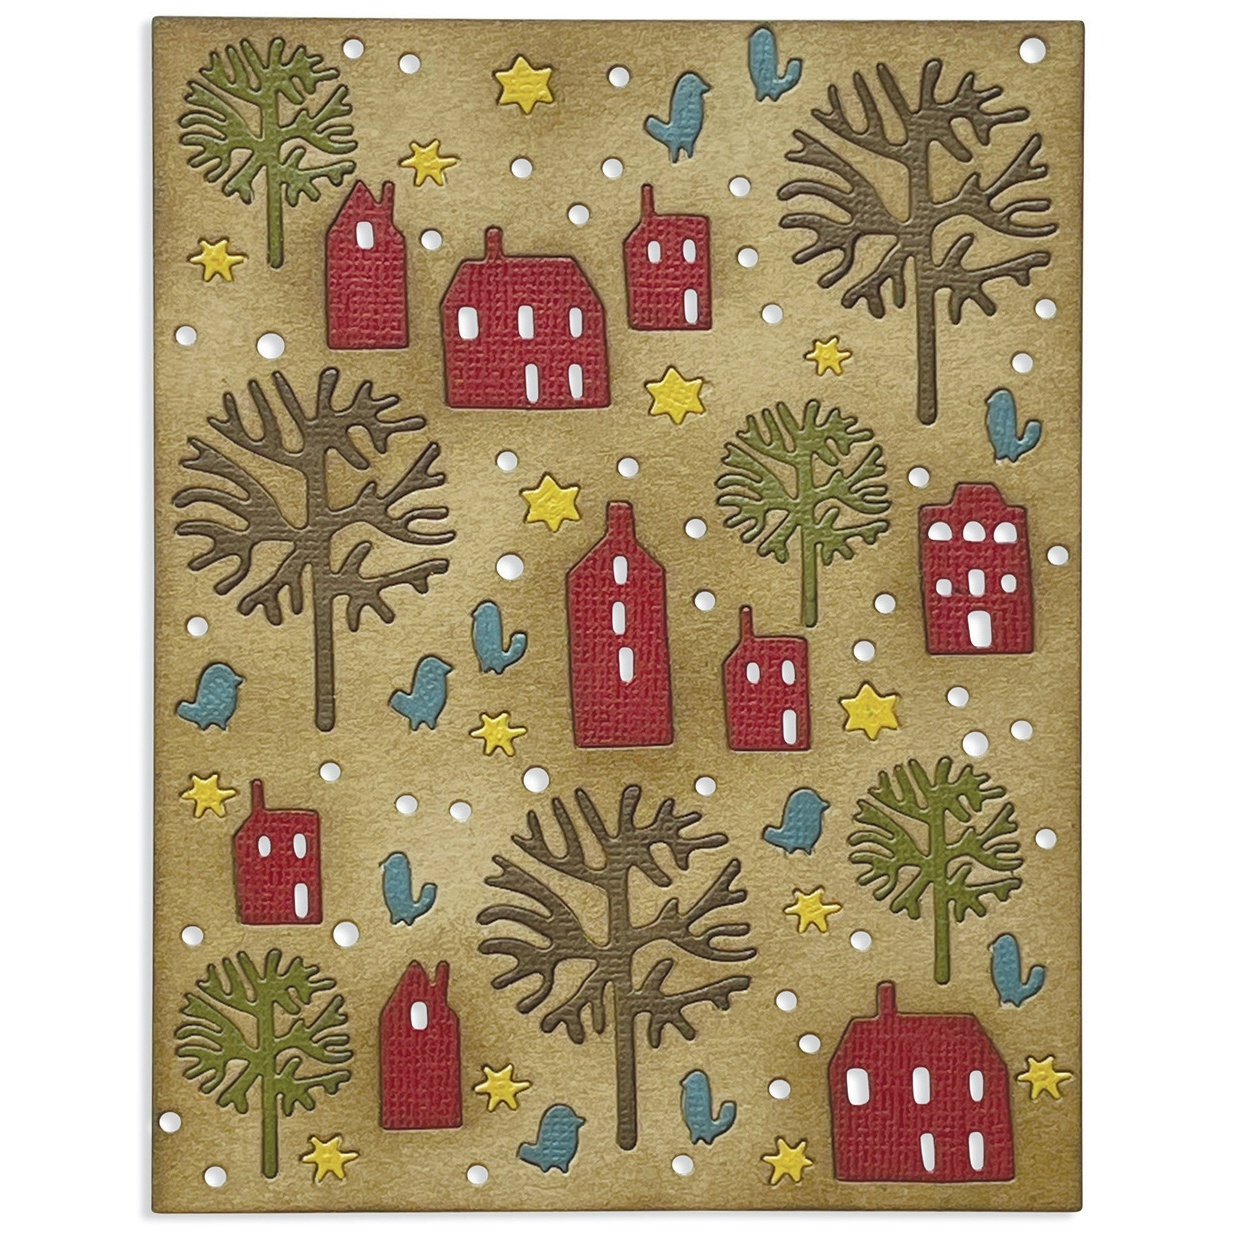 Sizzix - Thinlits Die - Countryside by Tim Holtz